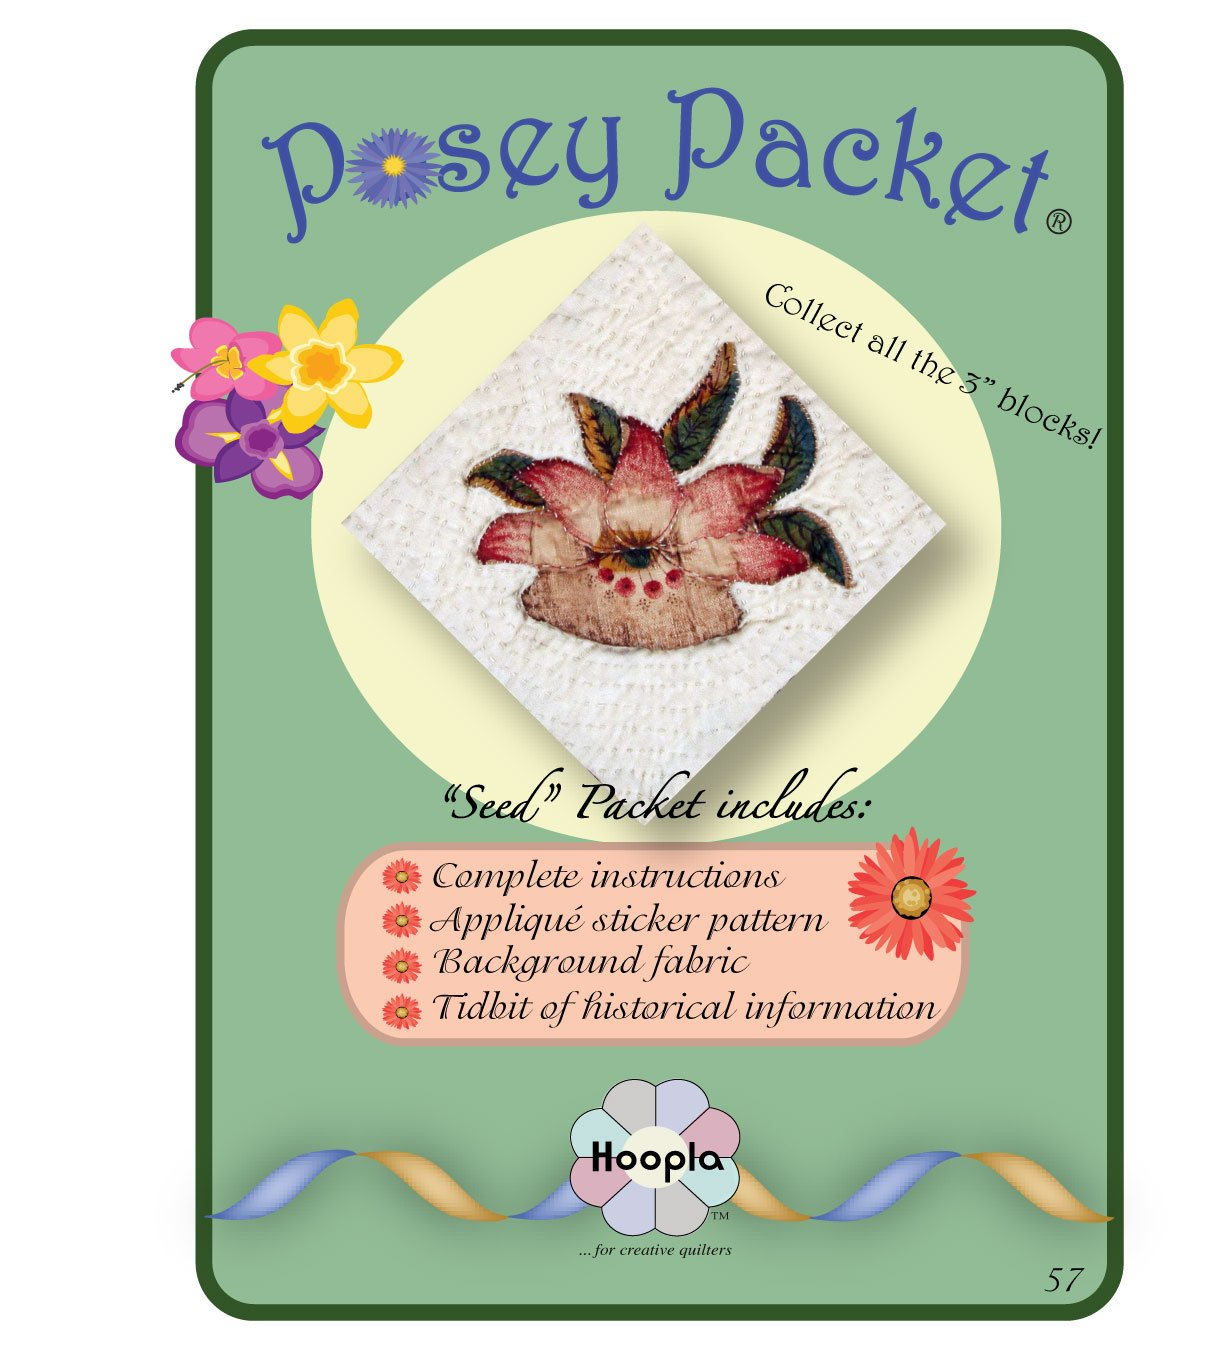 Posey Packet 57